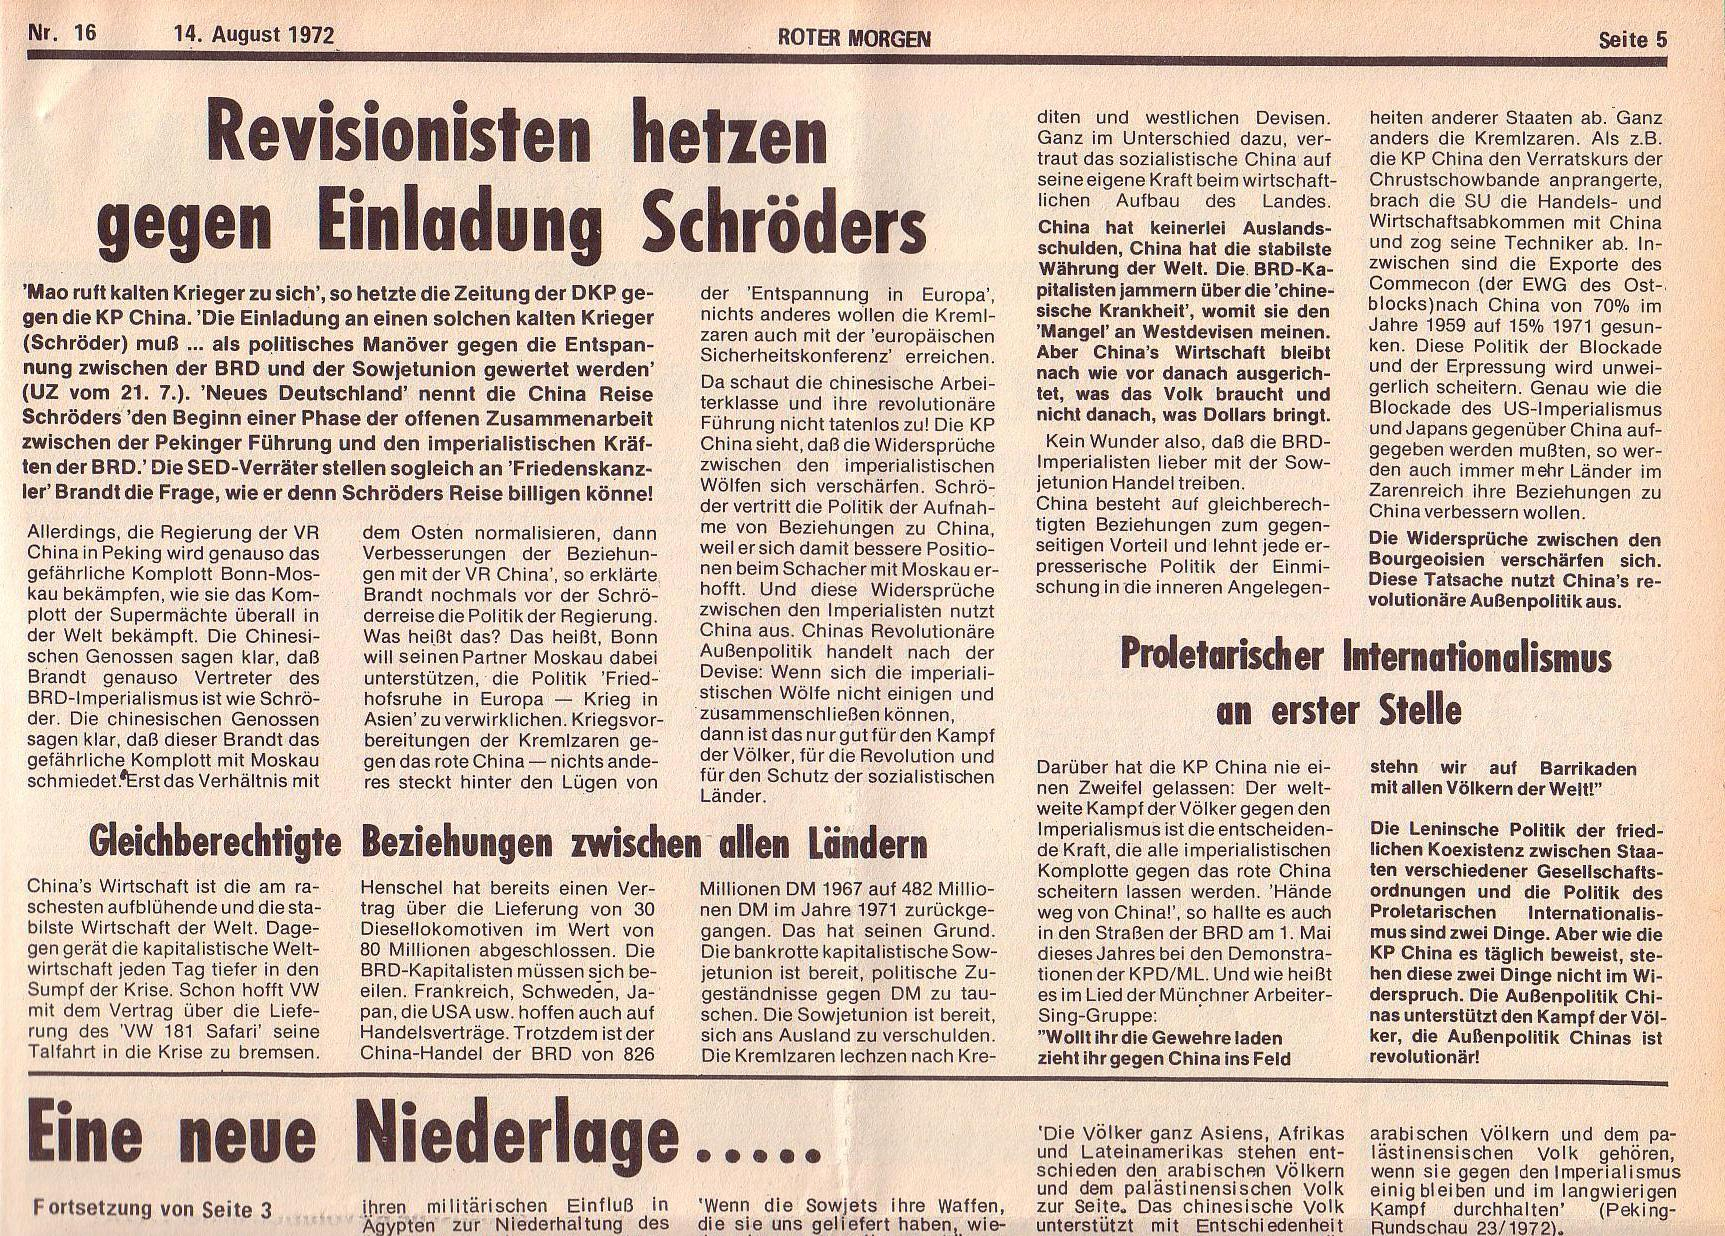 Roter Morgen, 6. Jg., 14. August 1972, Nr. 16, Seite 5a